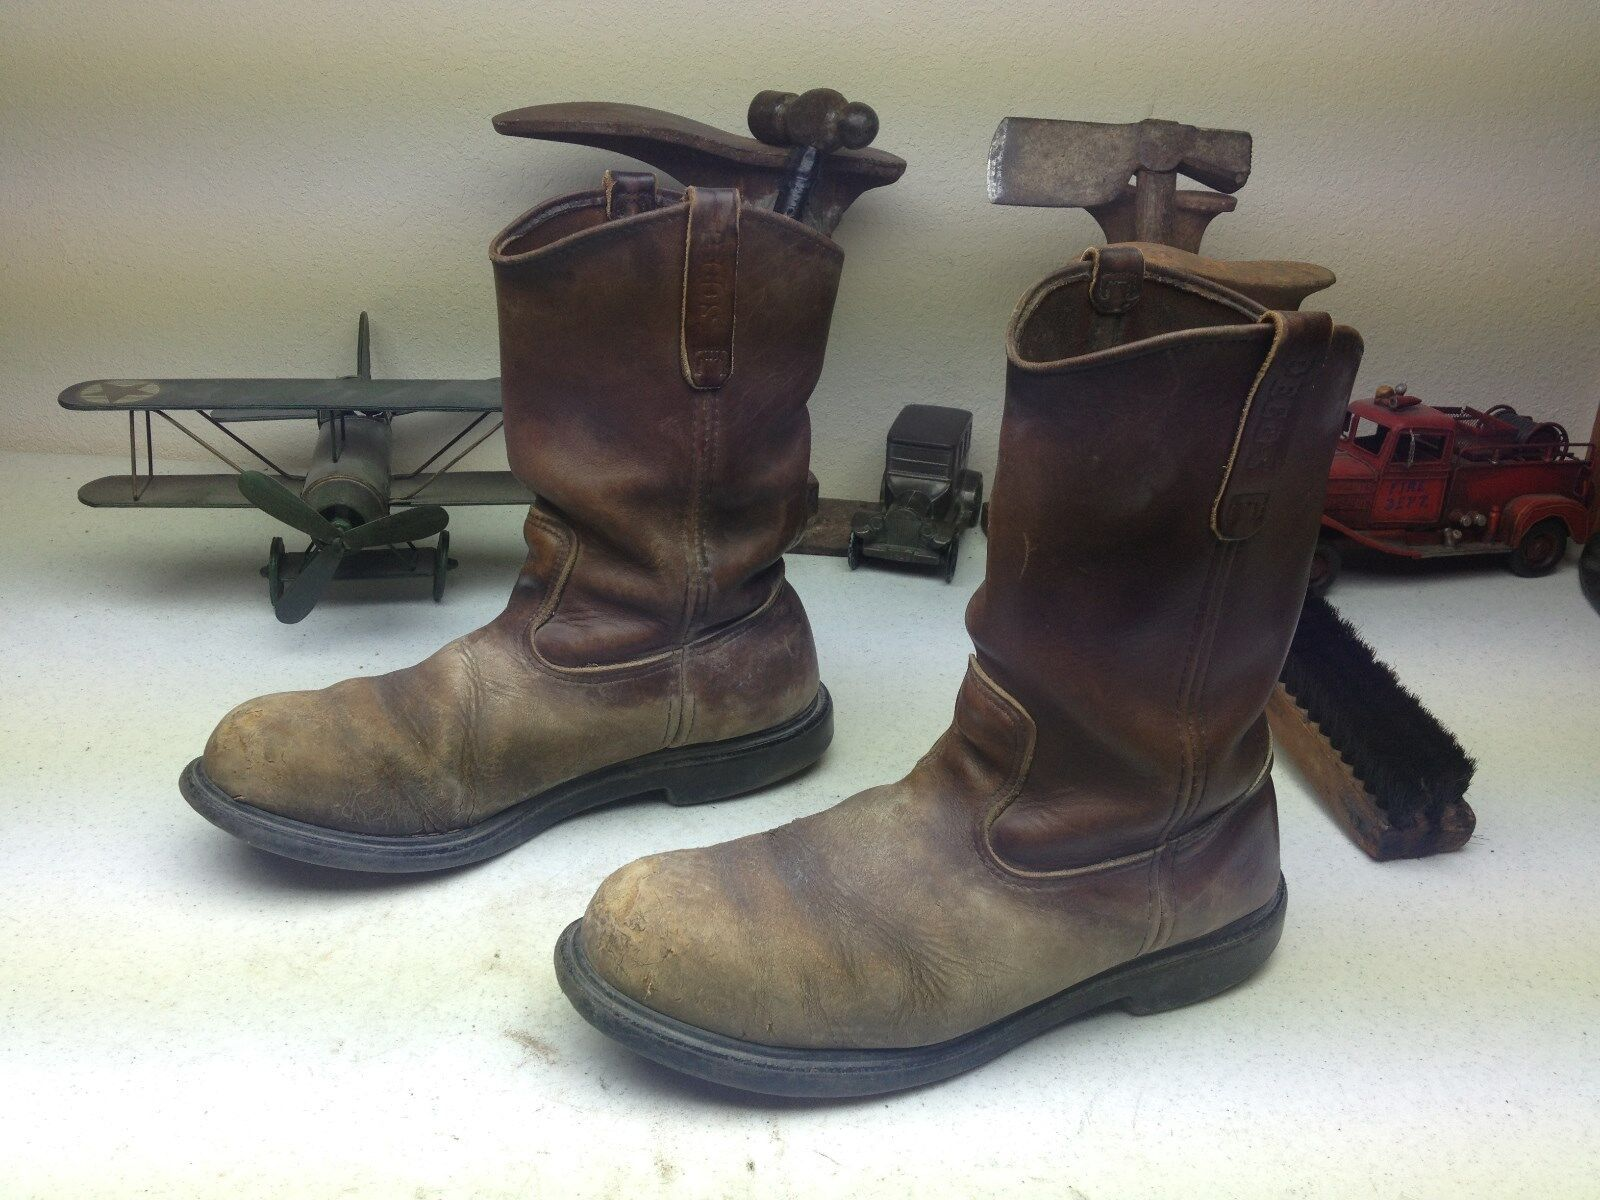 RED WING OIL RIG DISTRESSSED BROWN LEATHER ENGINEER STEEL TOE TOE TOE WORK BOOTS 11 E 4863aa